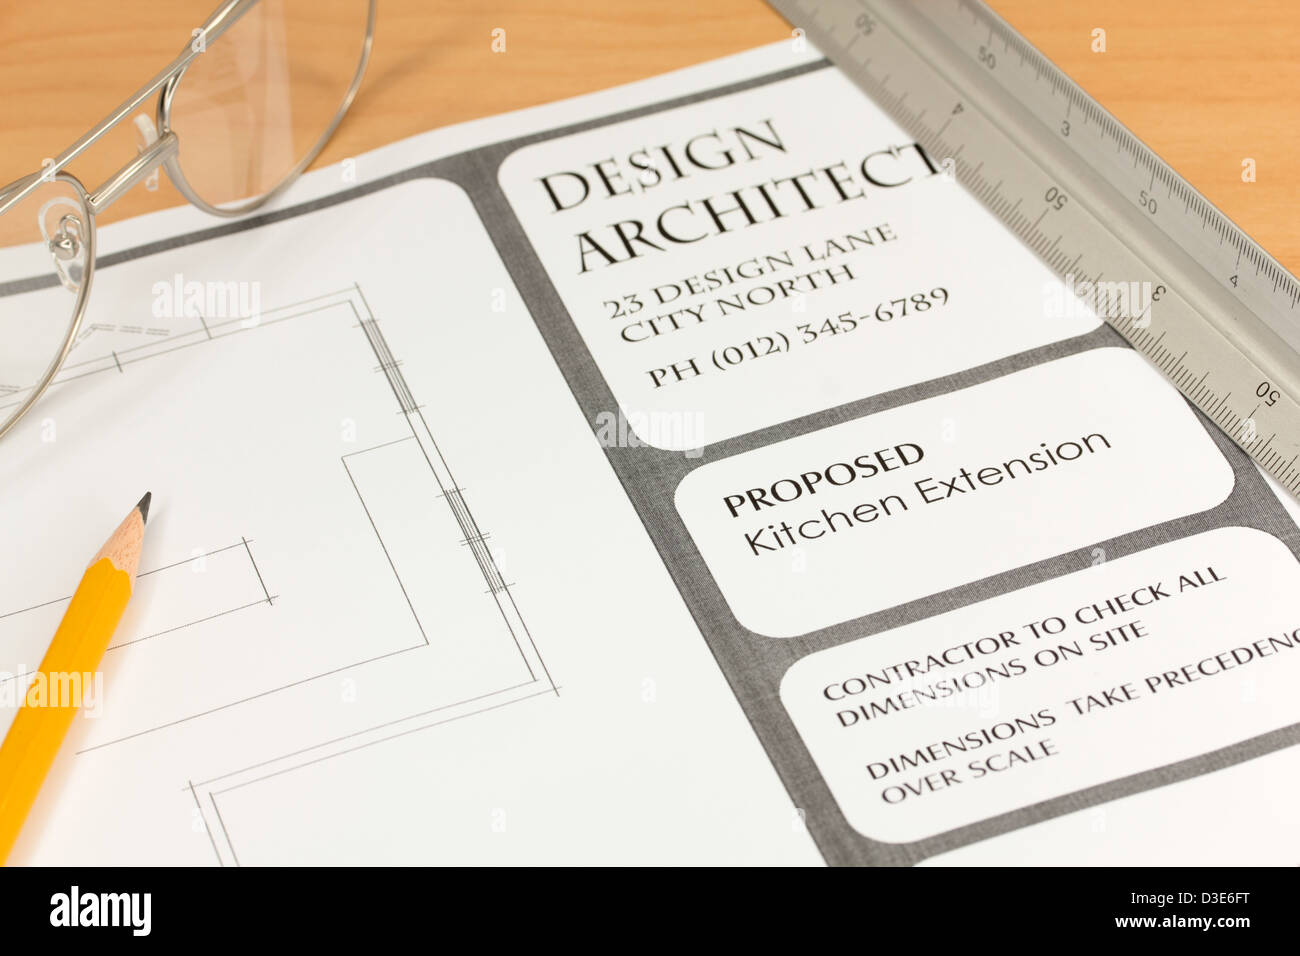 Architect Plans for New Kitchen - Stock Image